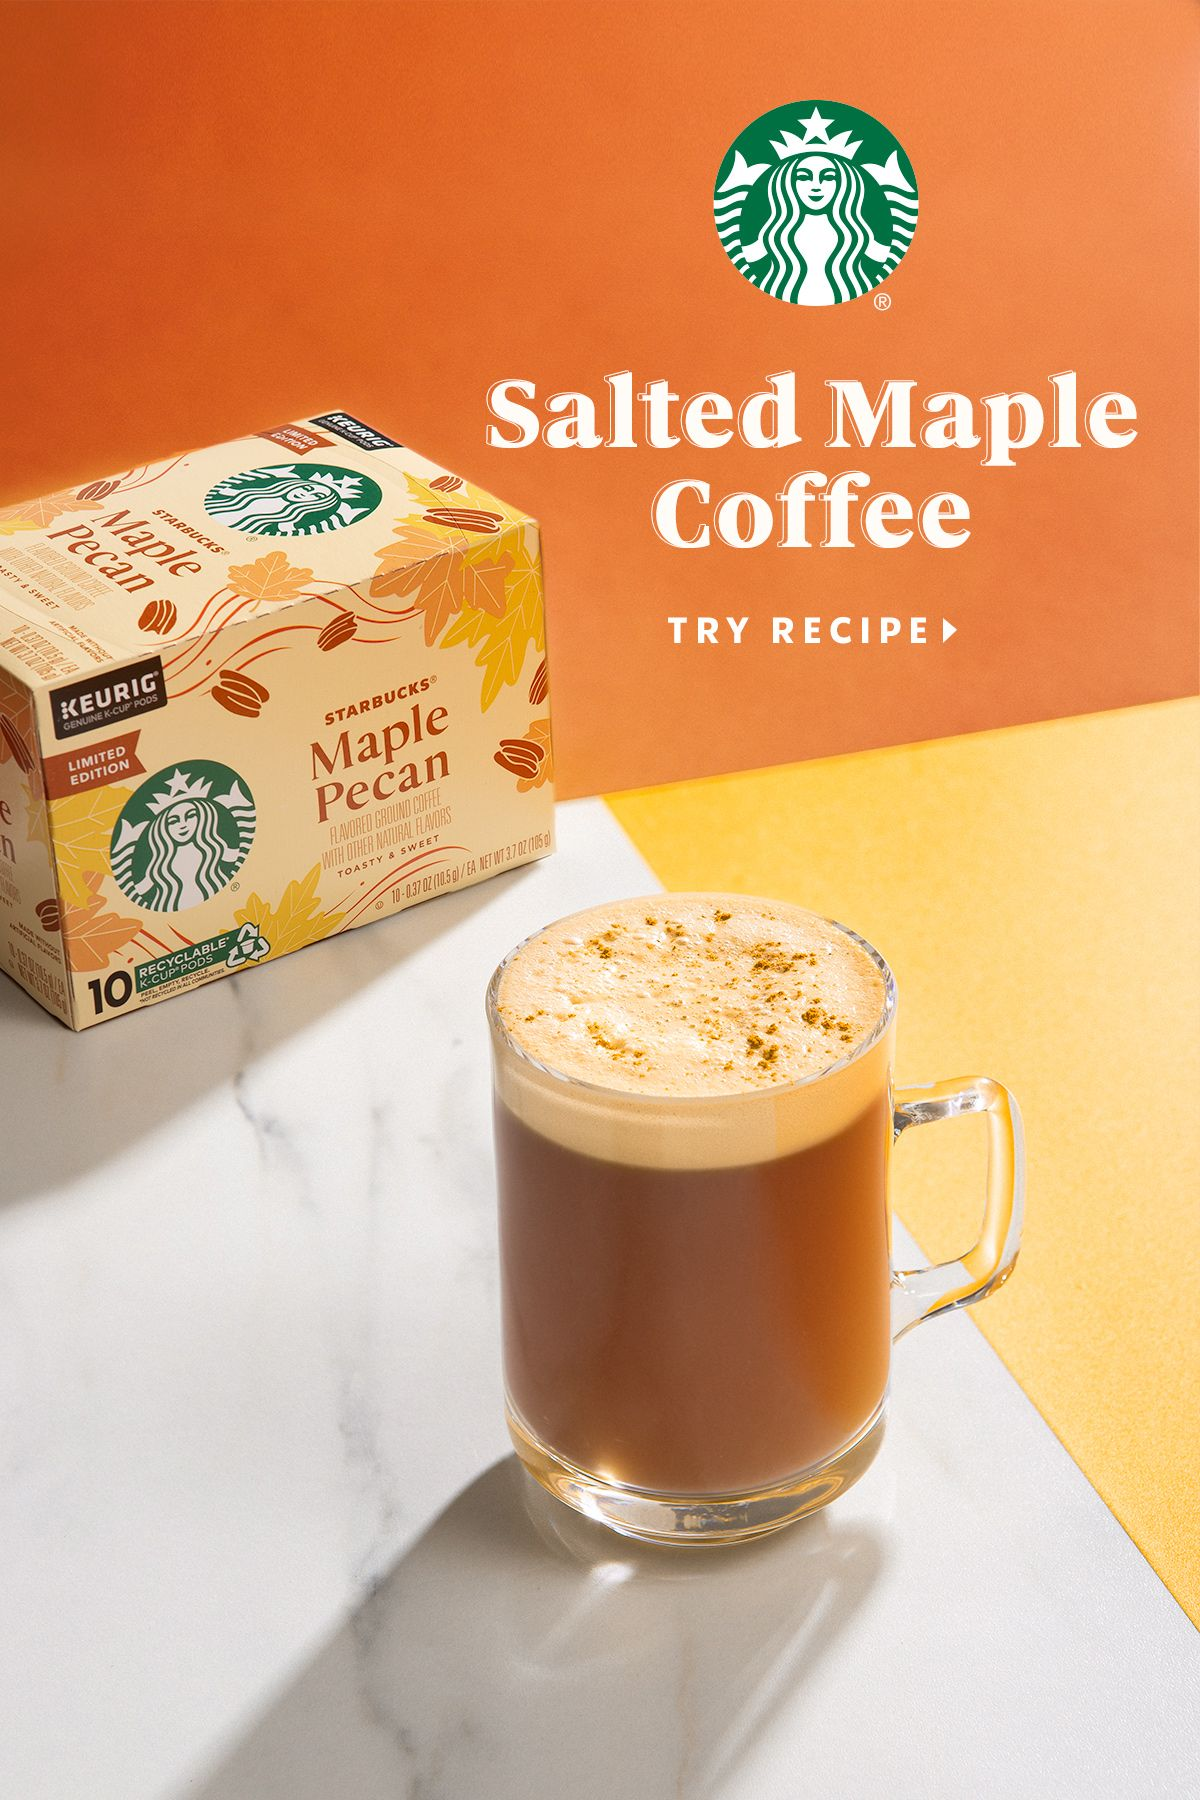 Salted Maple Coffee Starbucks At Home US Recipe in